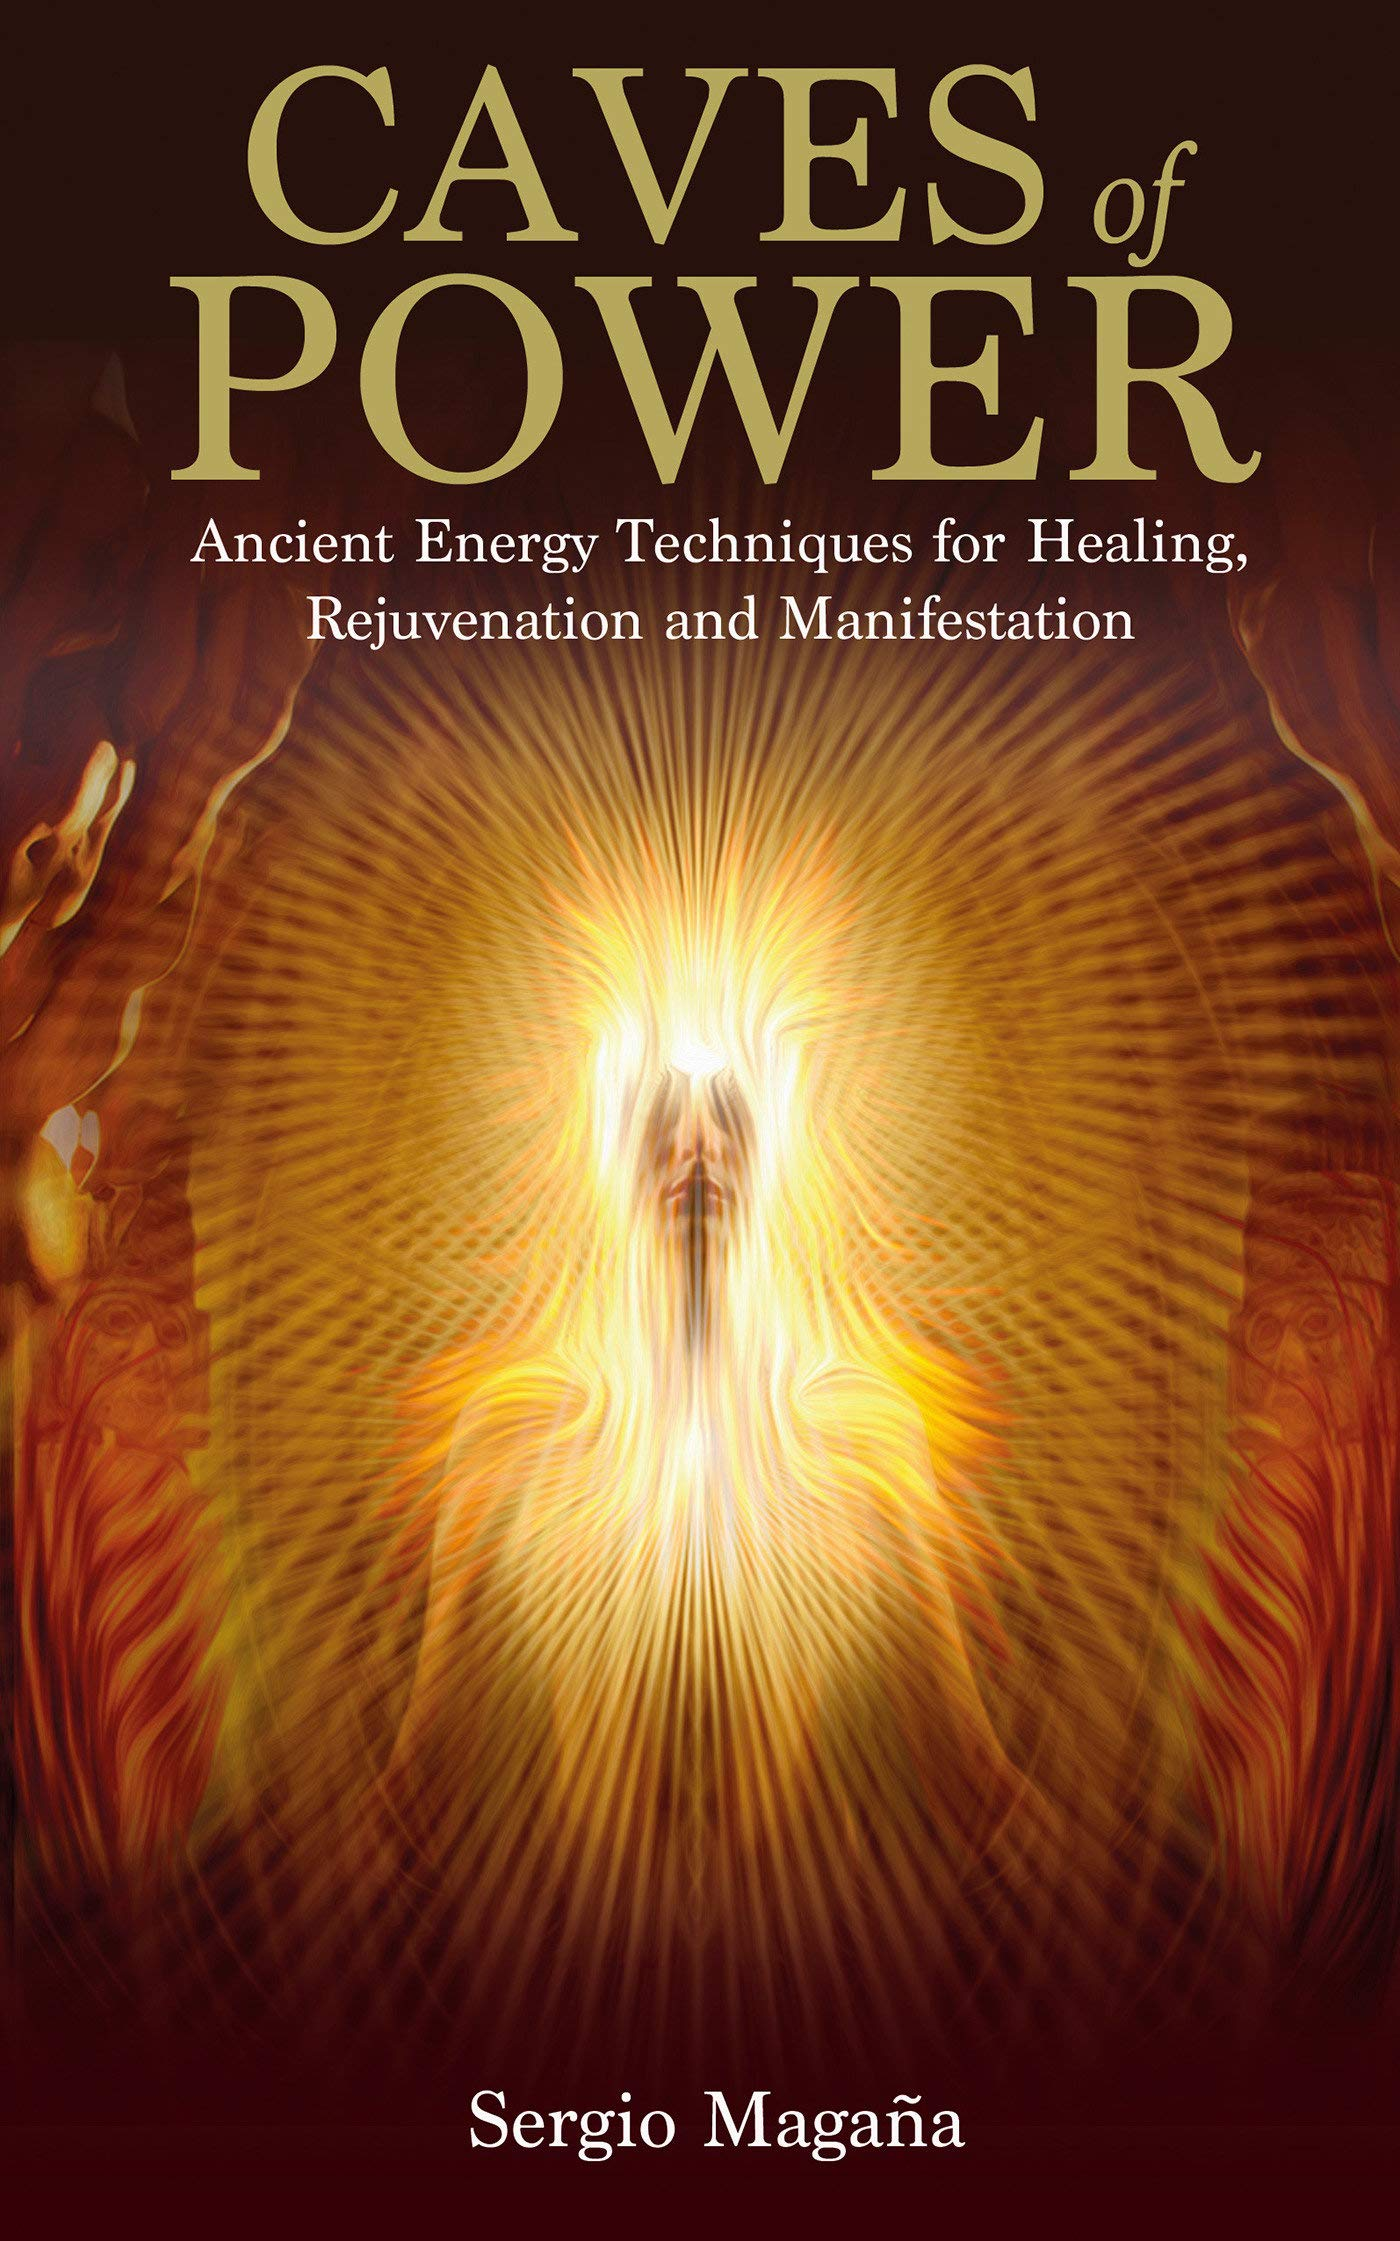 caves of power ancient energy techniques for healing rejuvenation and manifestation